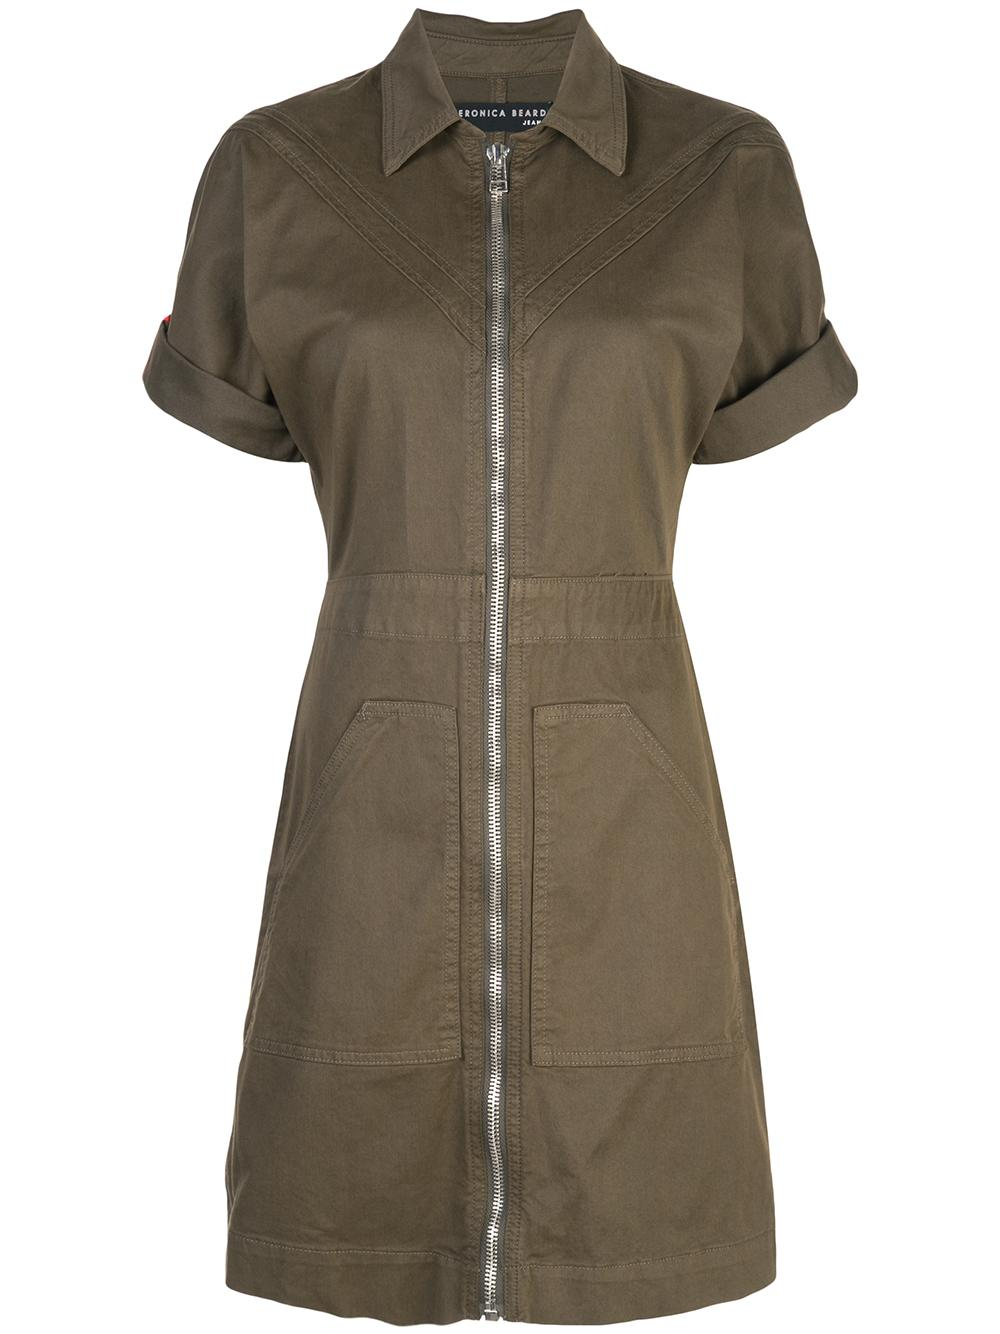 Dublin Short Sleeves Zip Up Dress